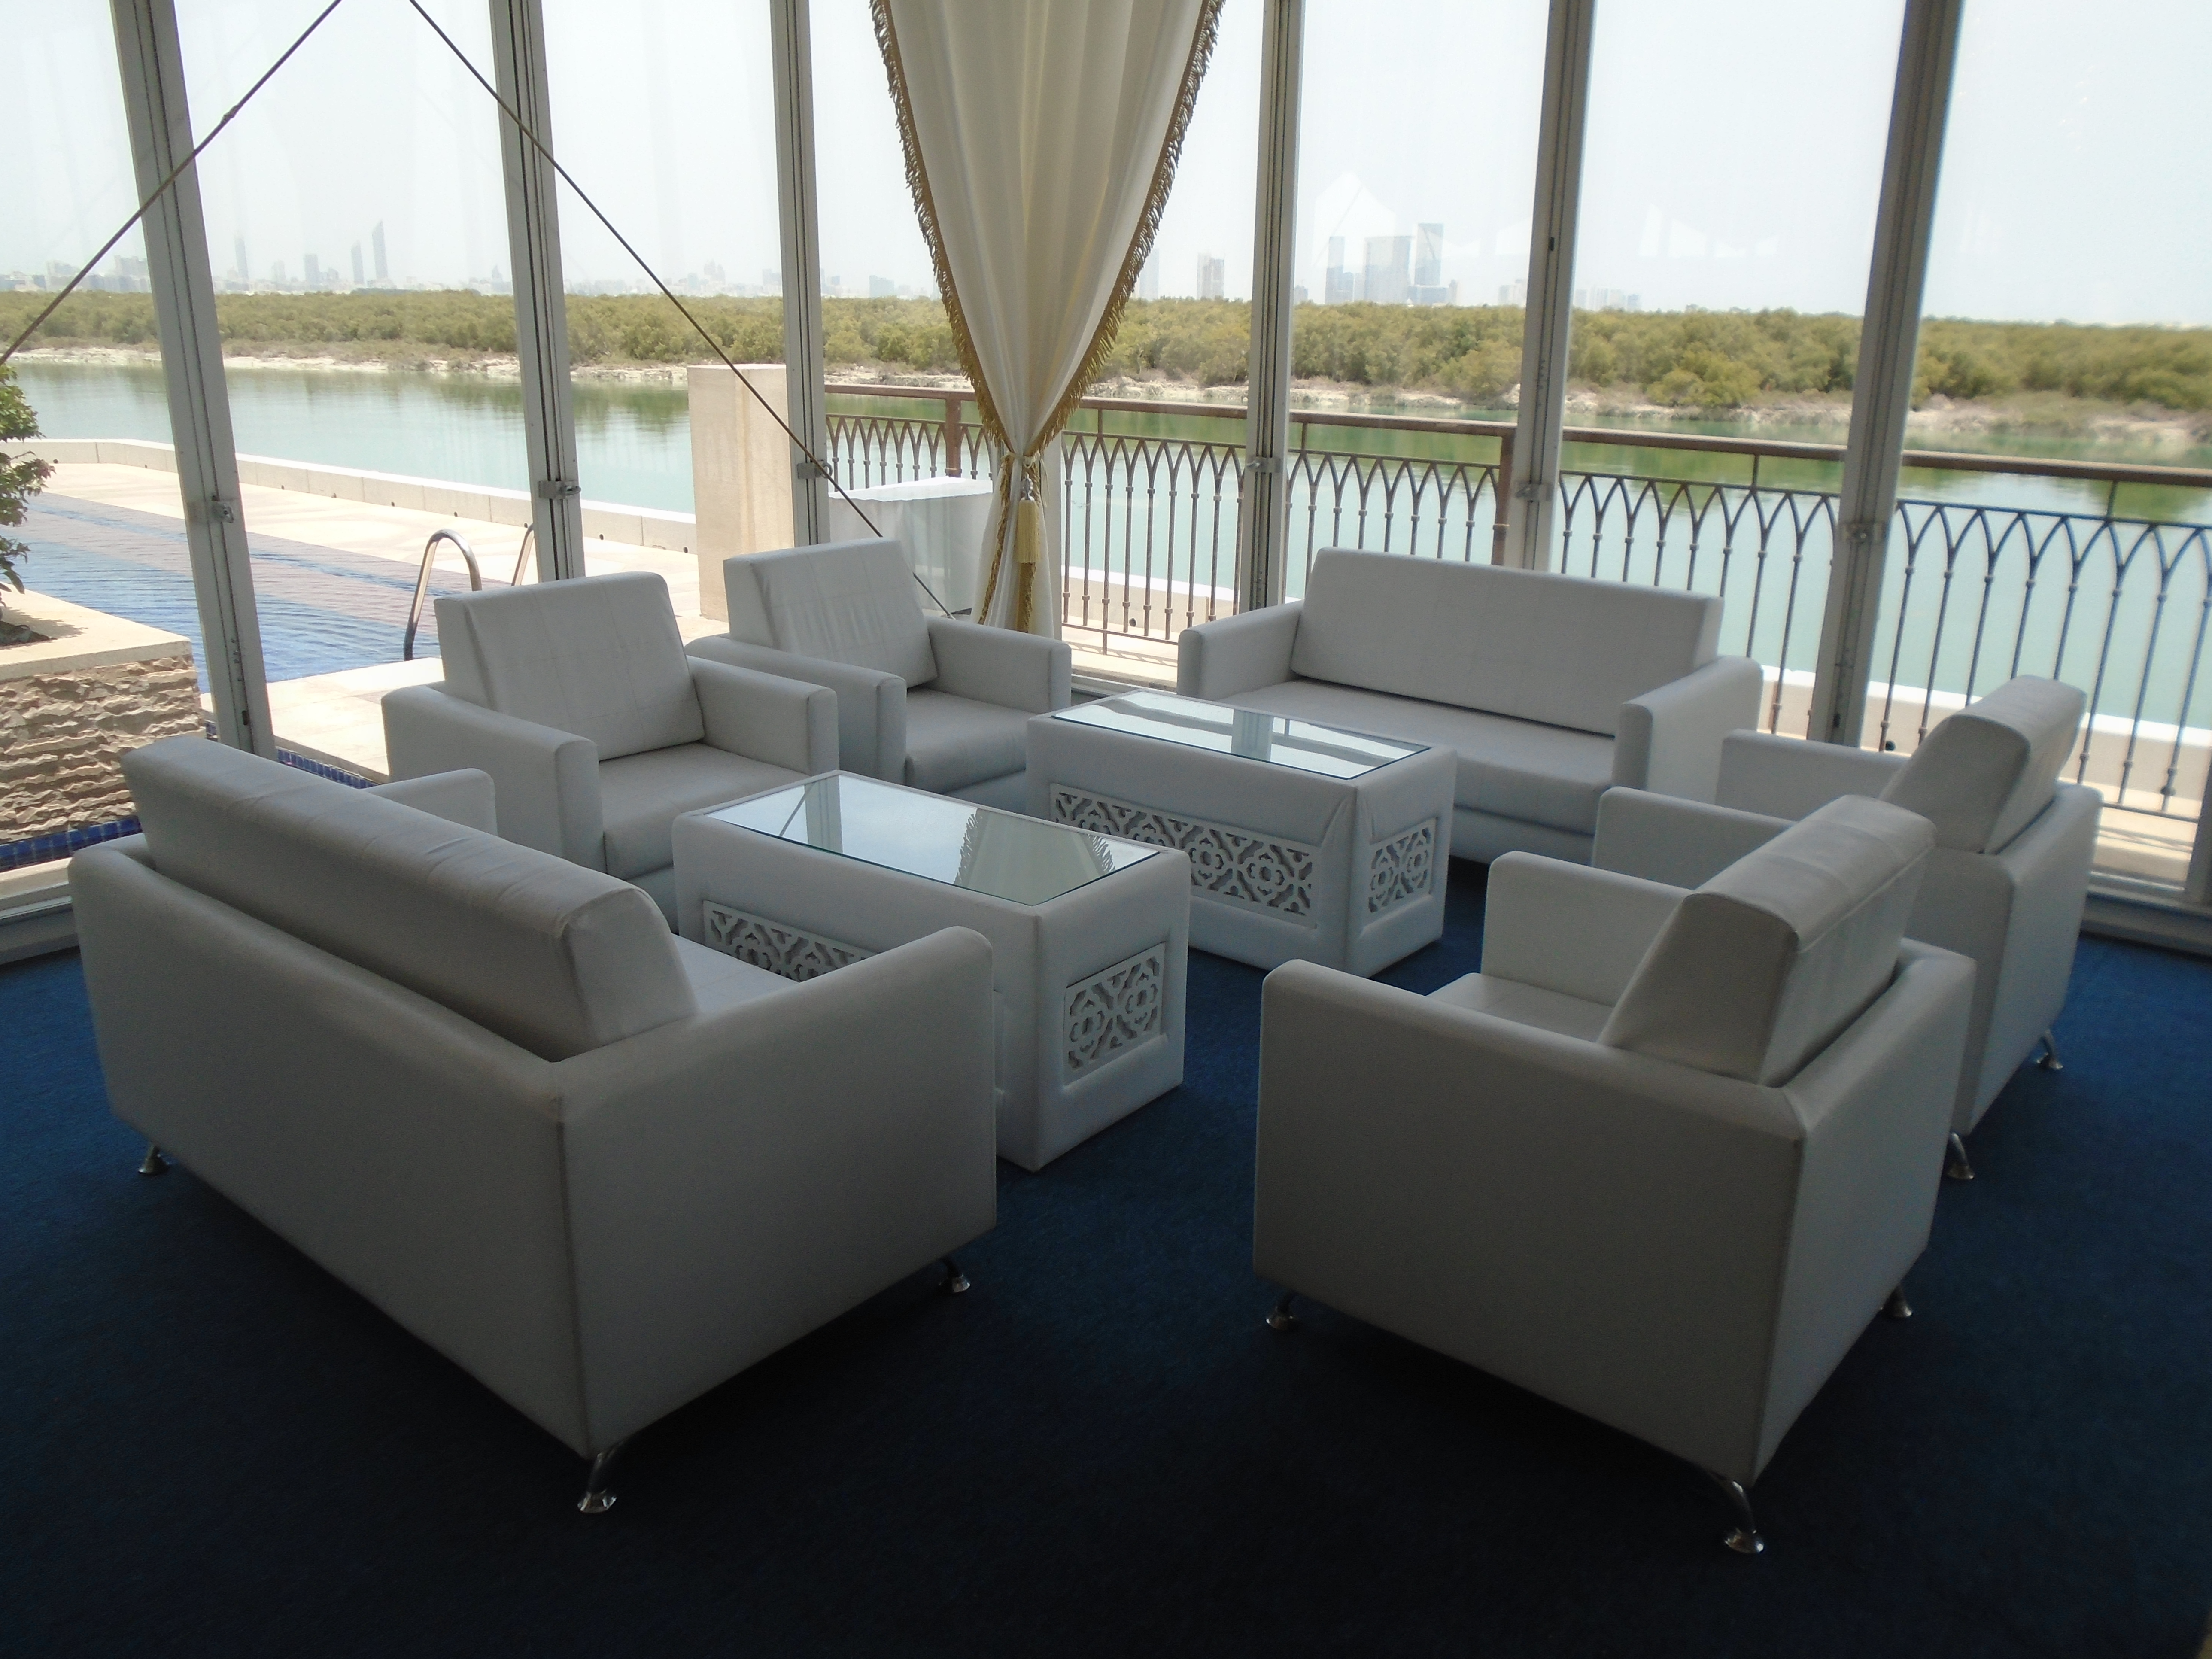 Sofa Set For Sale Uae Sofa Available For Rent Or Sale In Dubai And The Uae